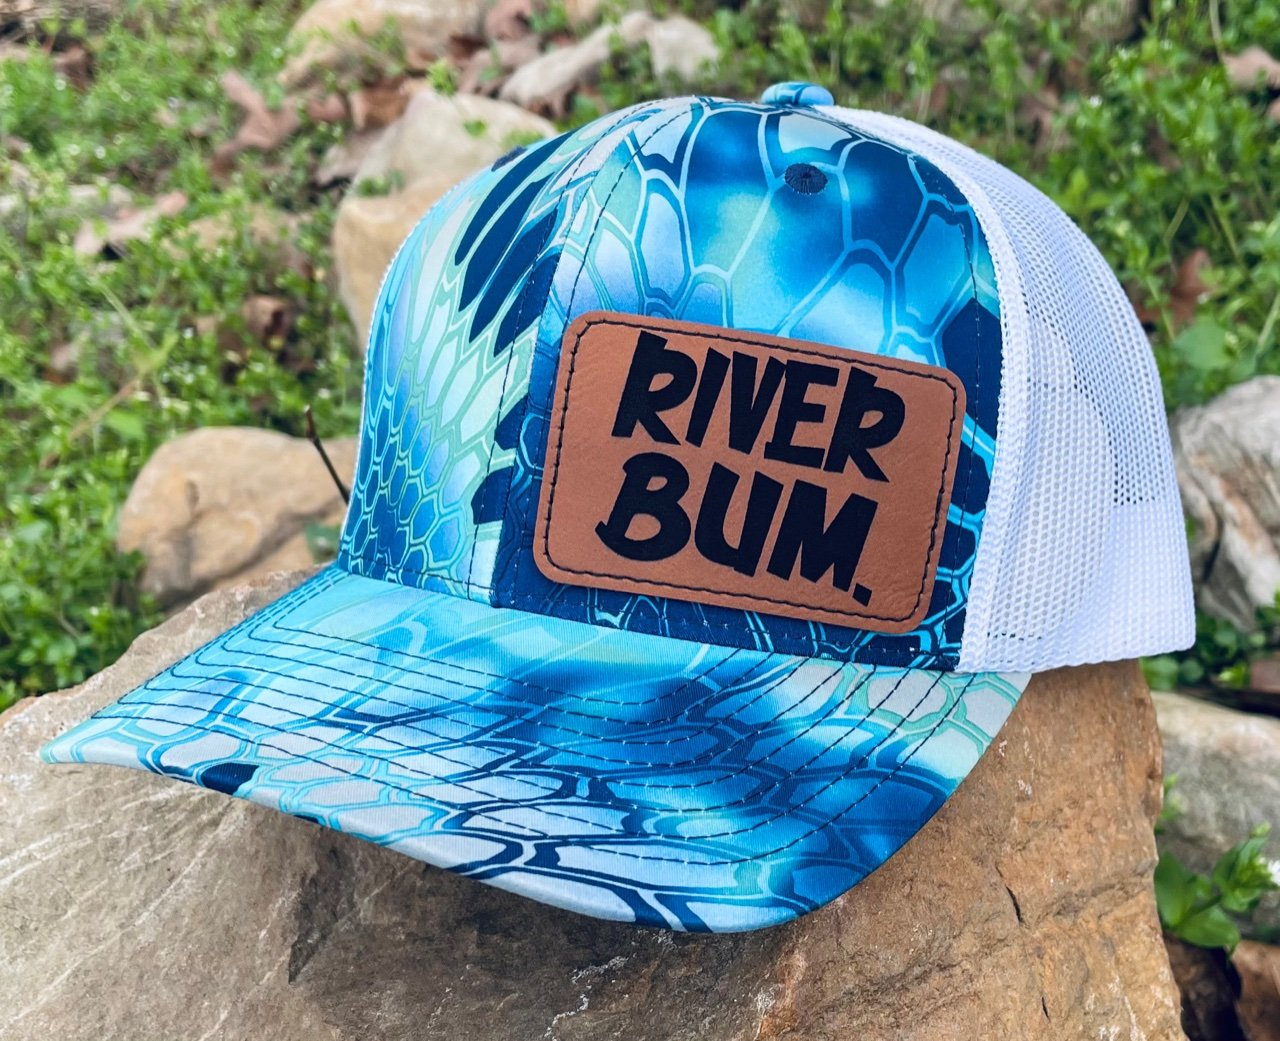 LHP0025 River Bum Leather Engraved Hat Patch 3x2